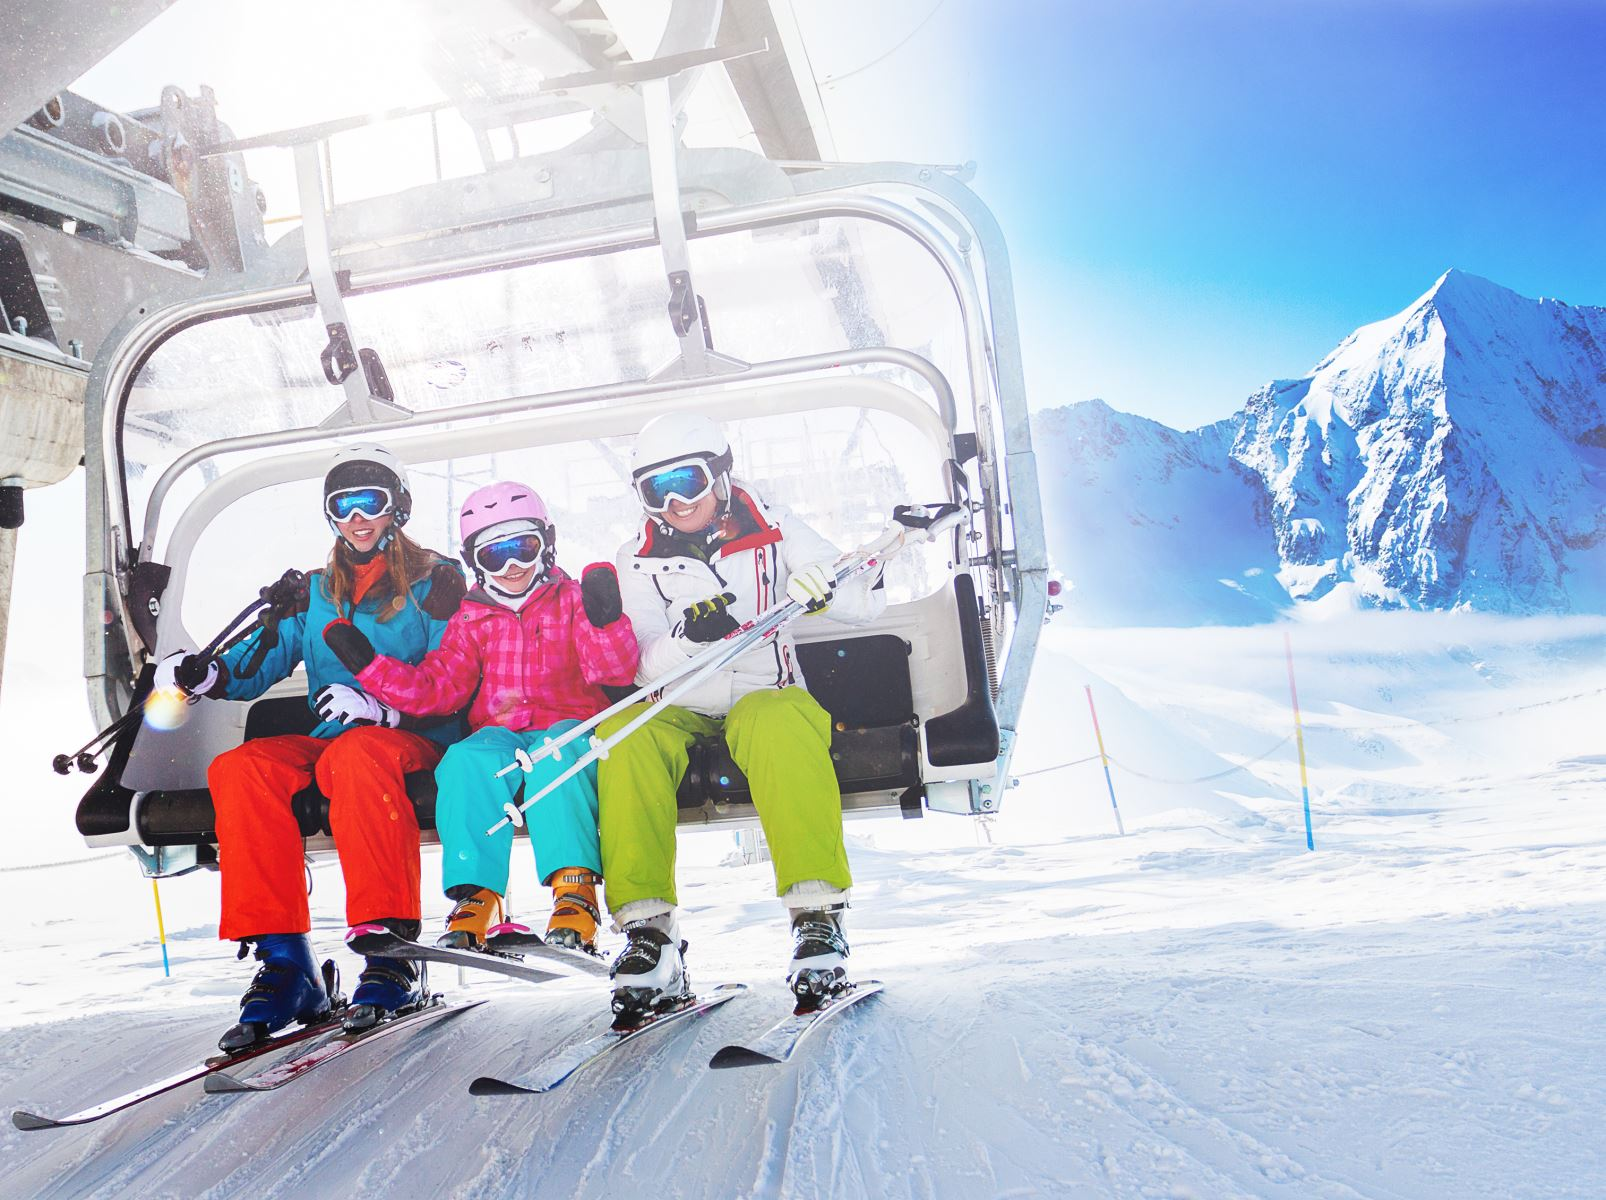 Family on Chair Lift in Winter